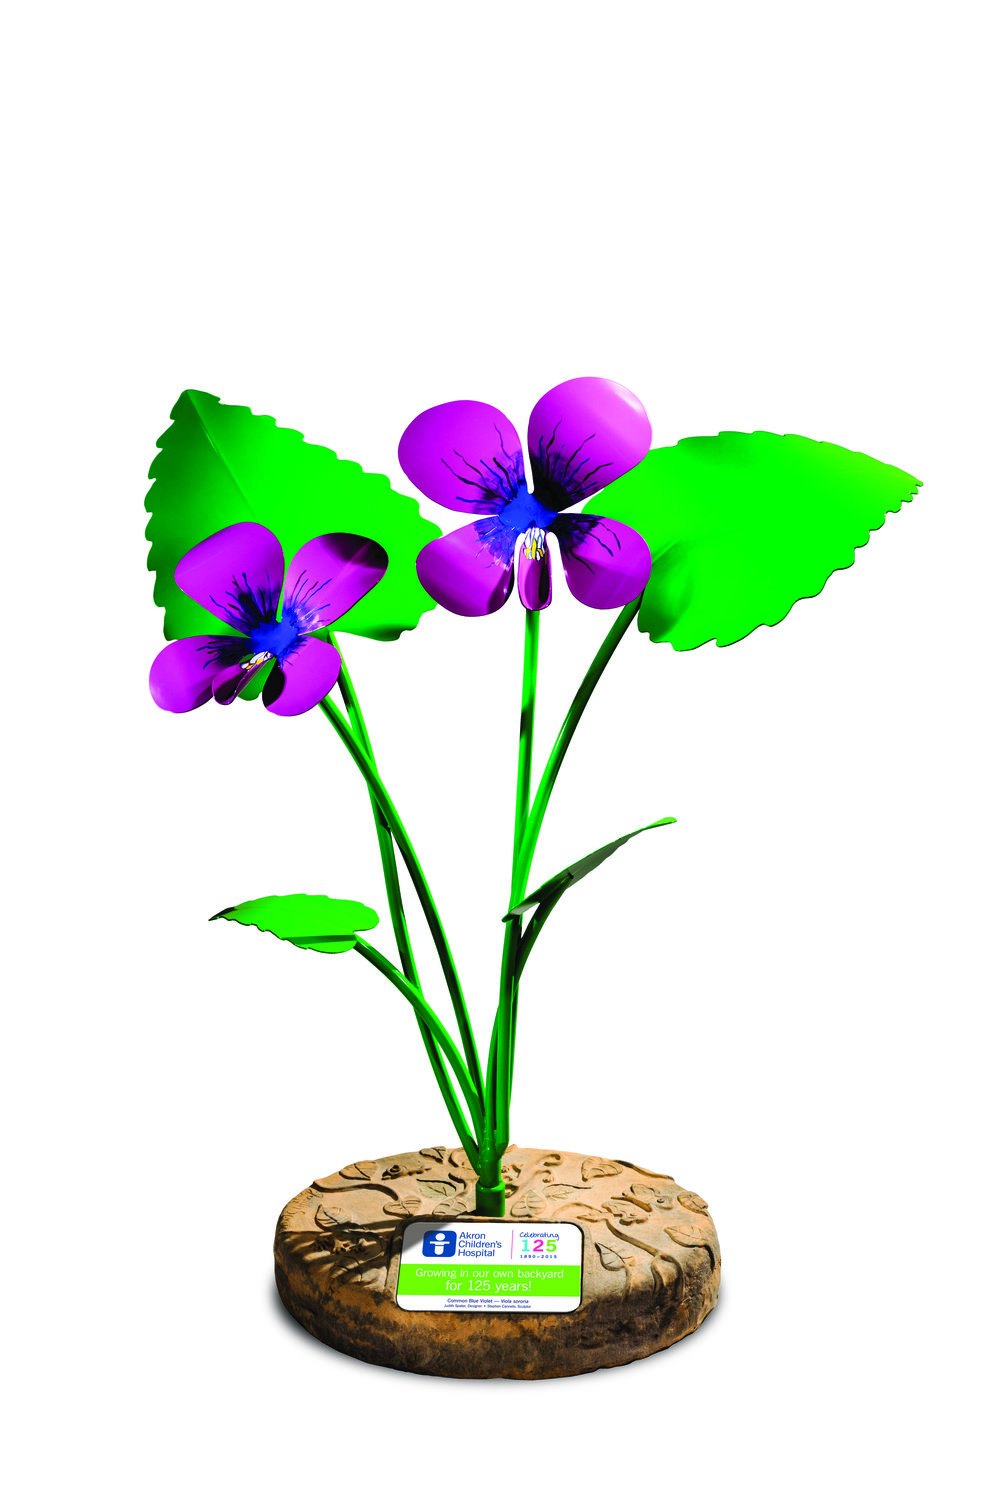 violet_plaque_4CHR - Copy.jpg